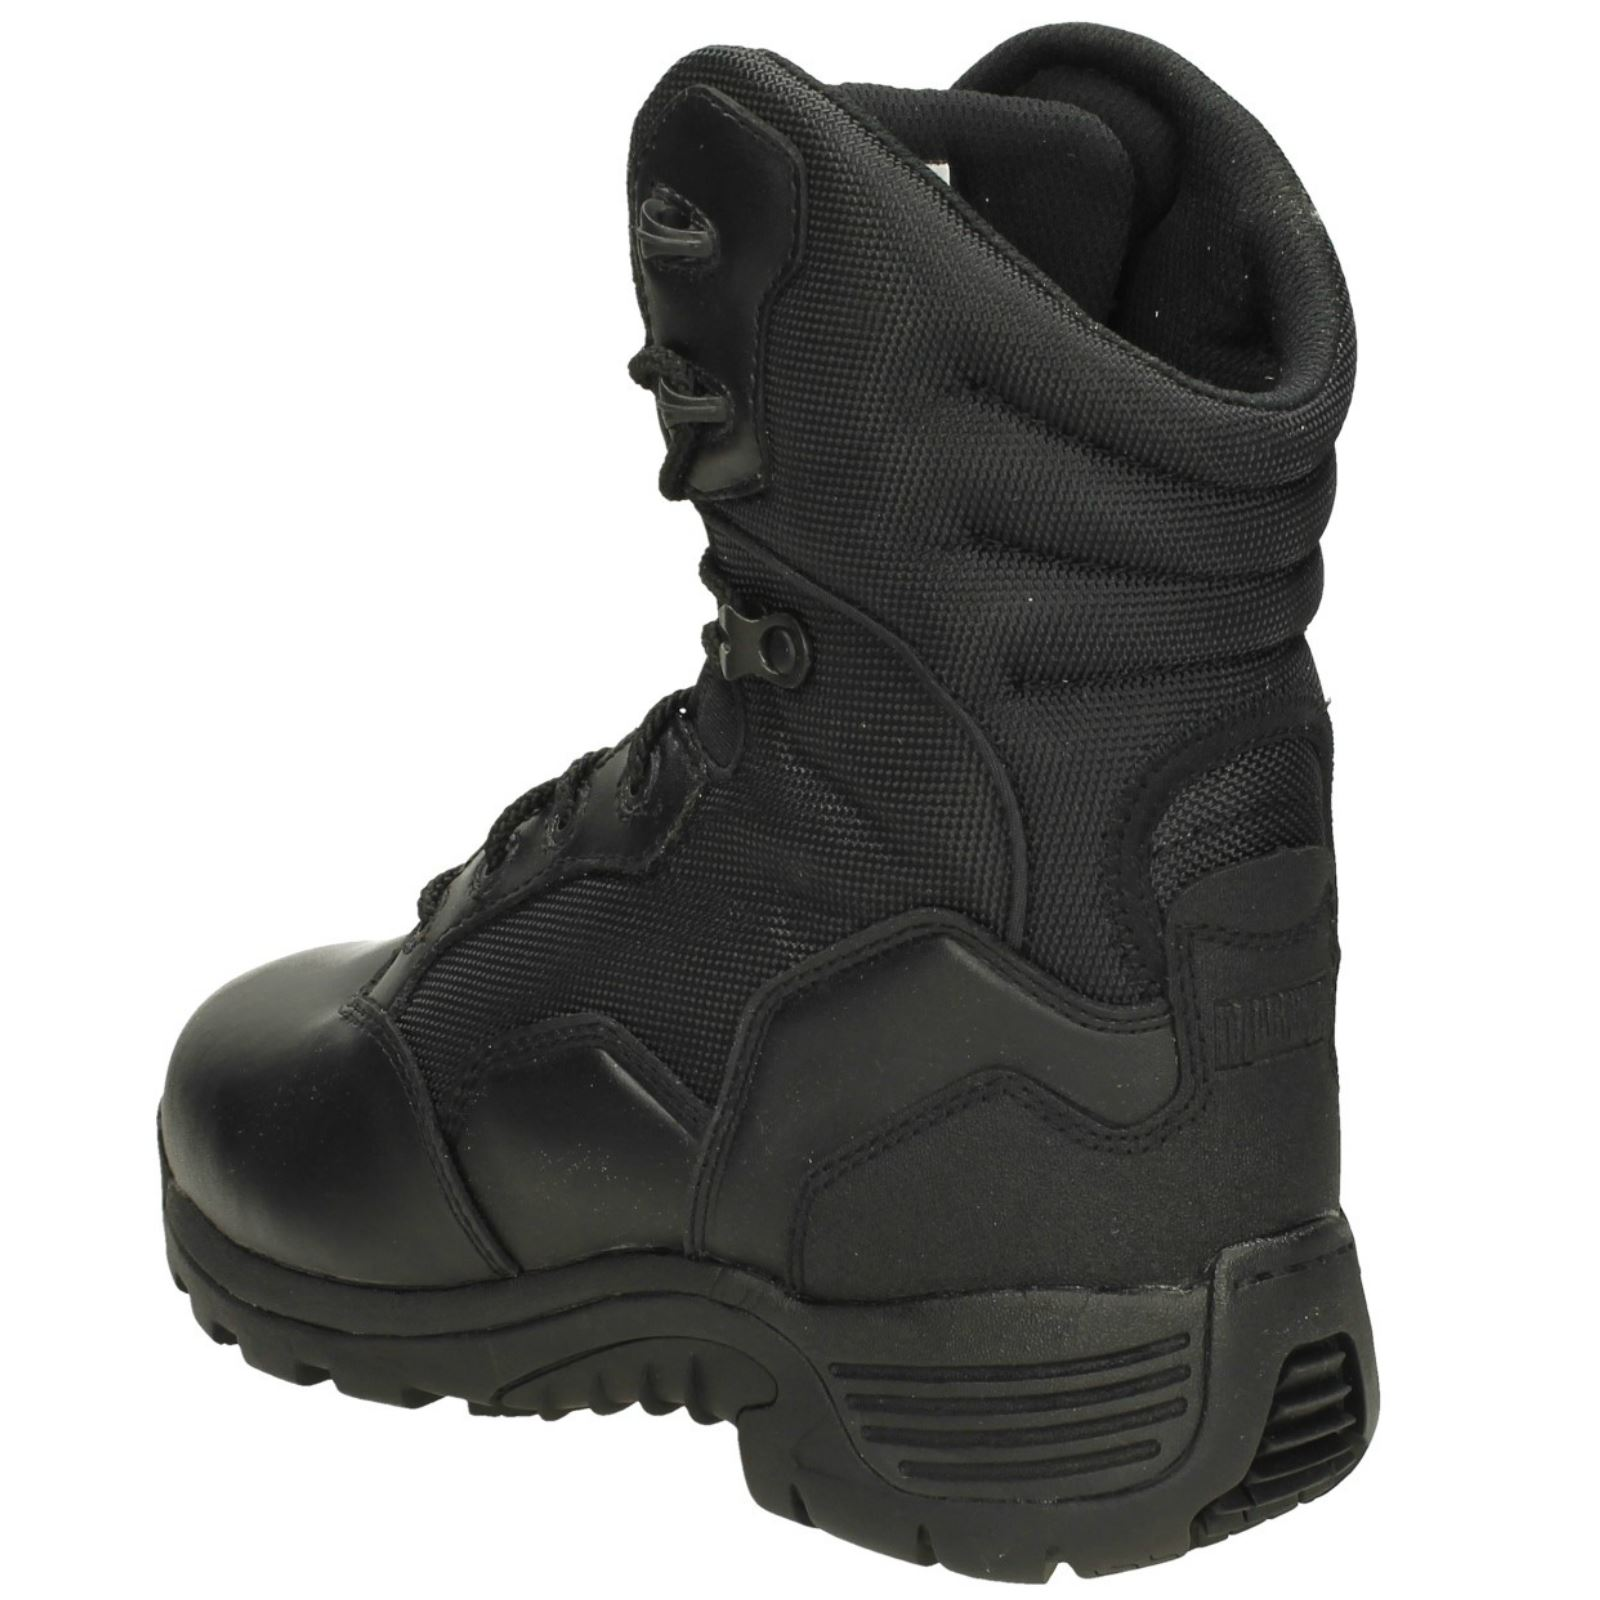 Mens-Magnum-Waterproof-Insulated-Boots-039-Strike-Force-II-039 thumbnail 4